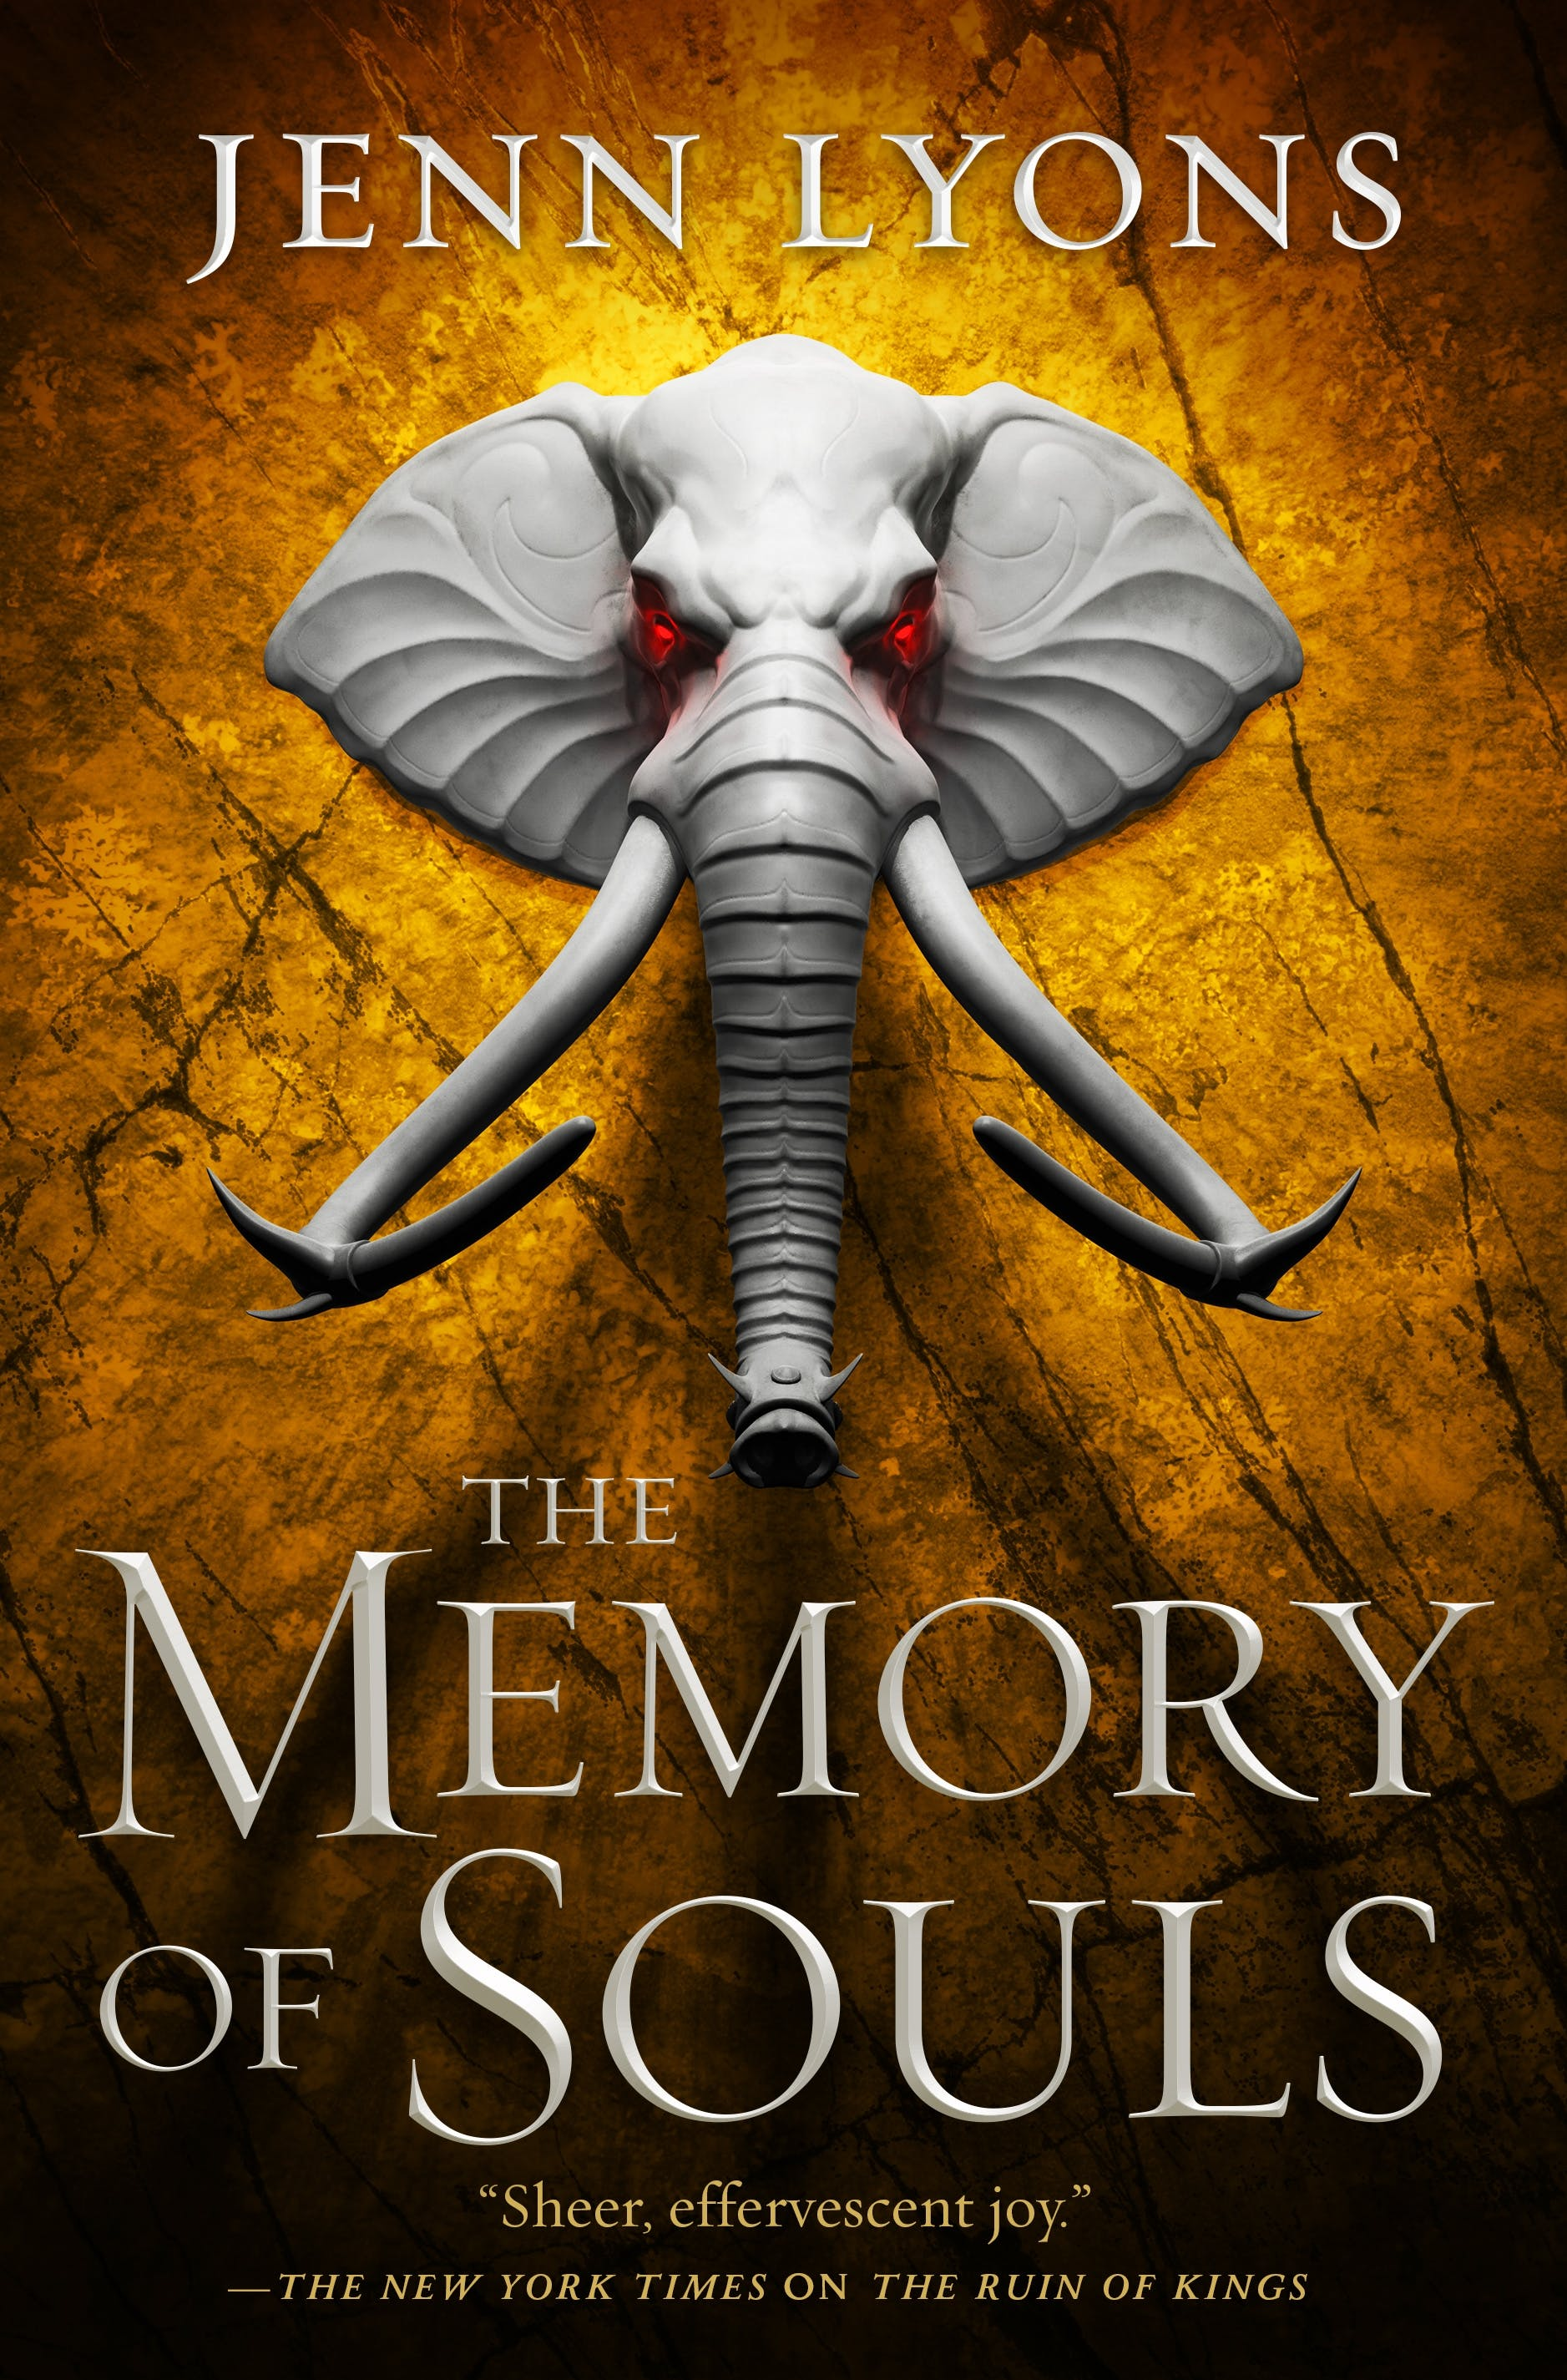 Image of The Memory of Souls